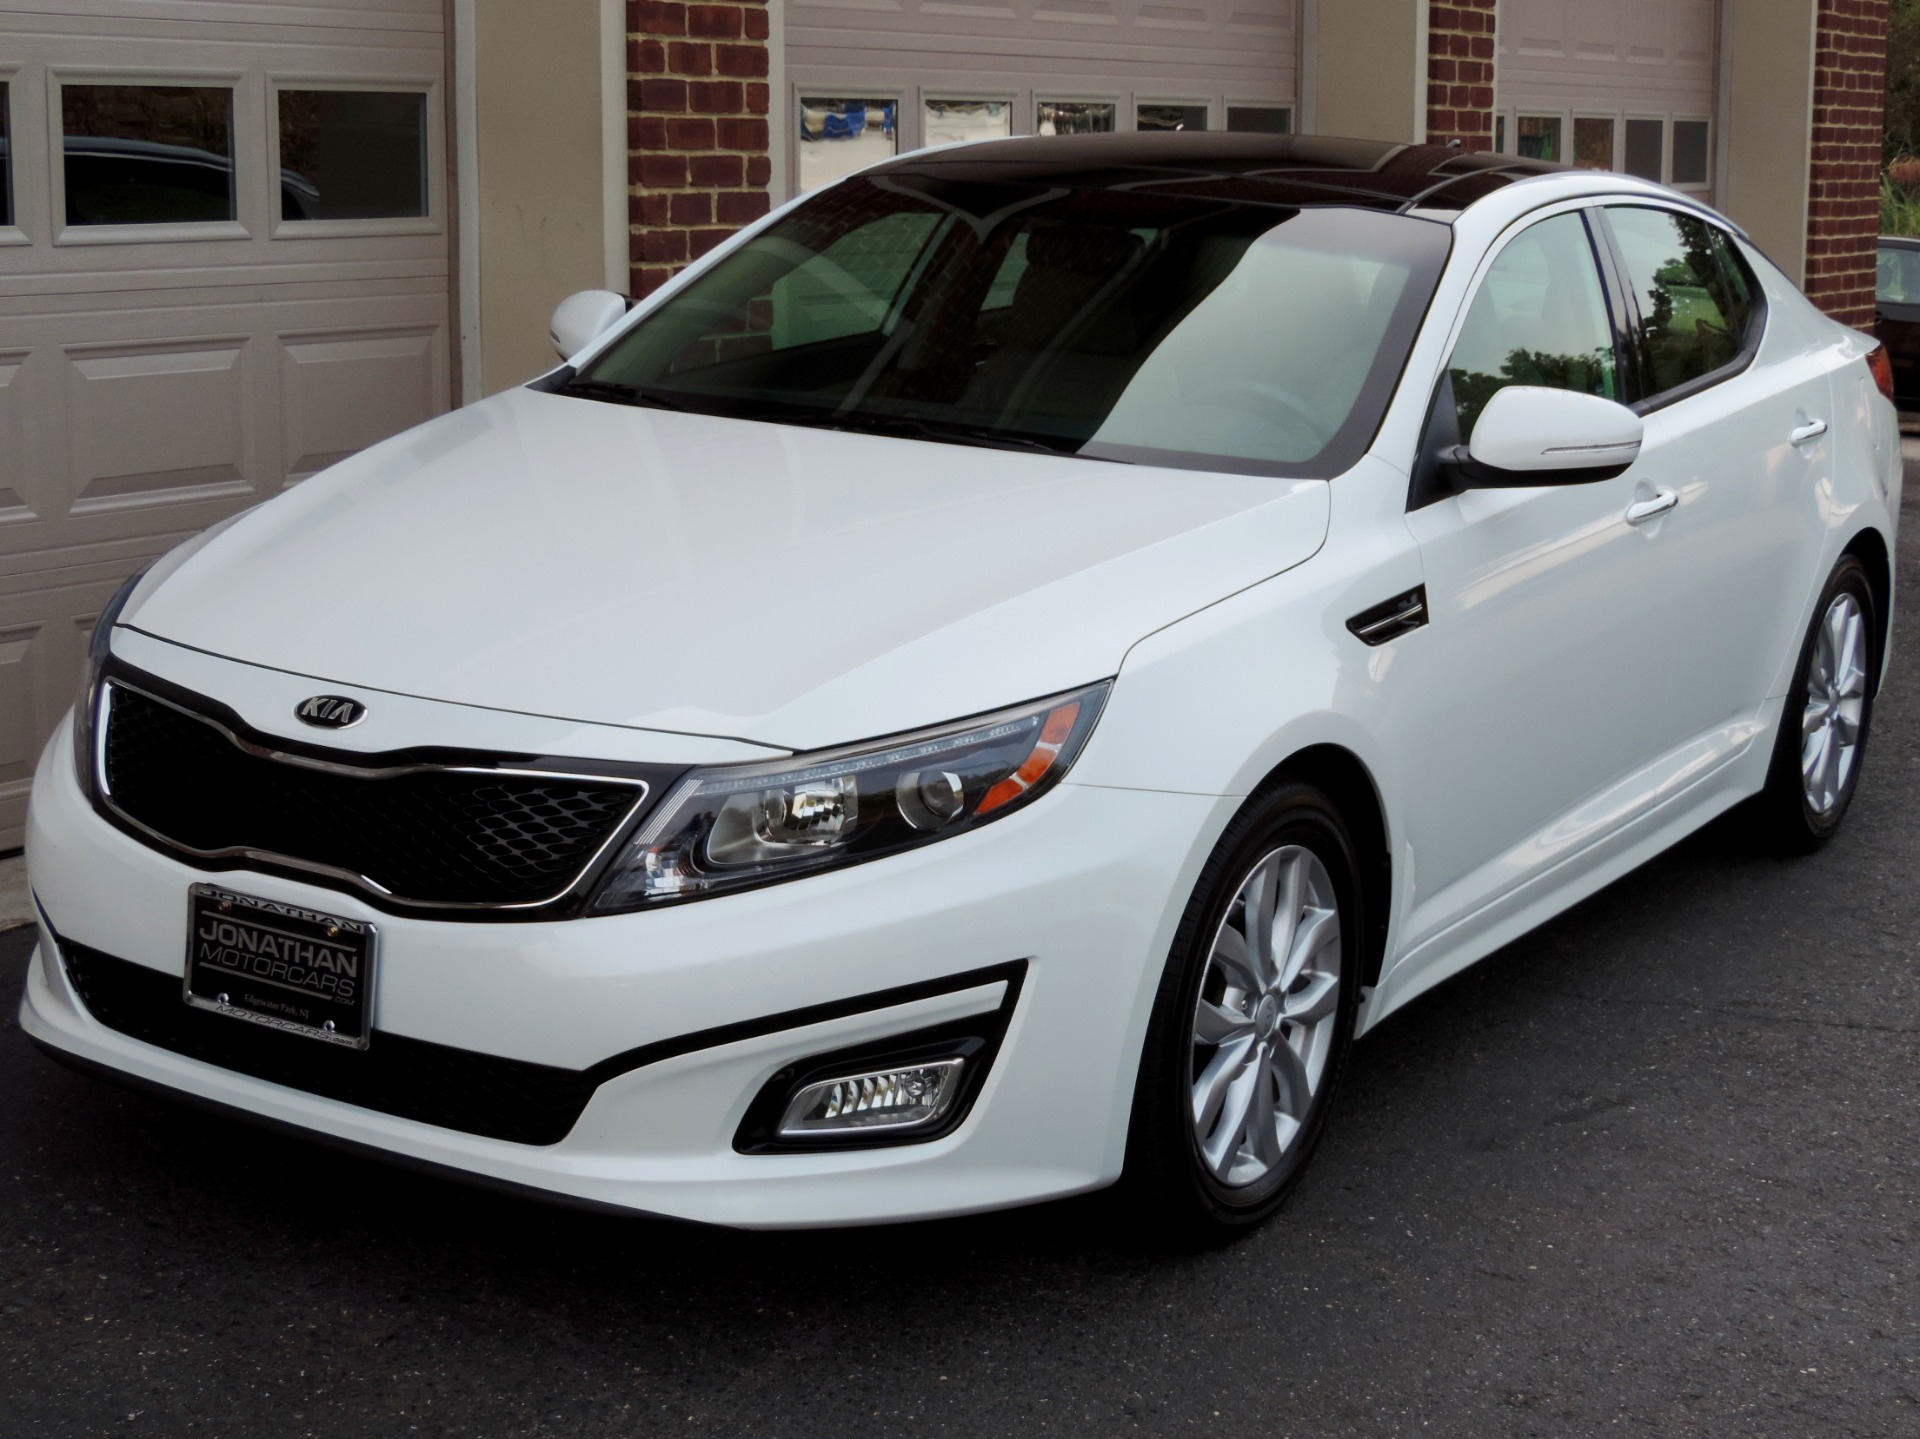 2015 kia optima ex stock 505993 for sale near edgewater park nj nj kia dealer. Black Bedroom Furniture Sets. Home Design Ideas